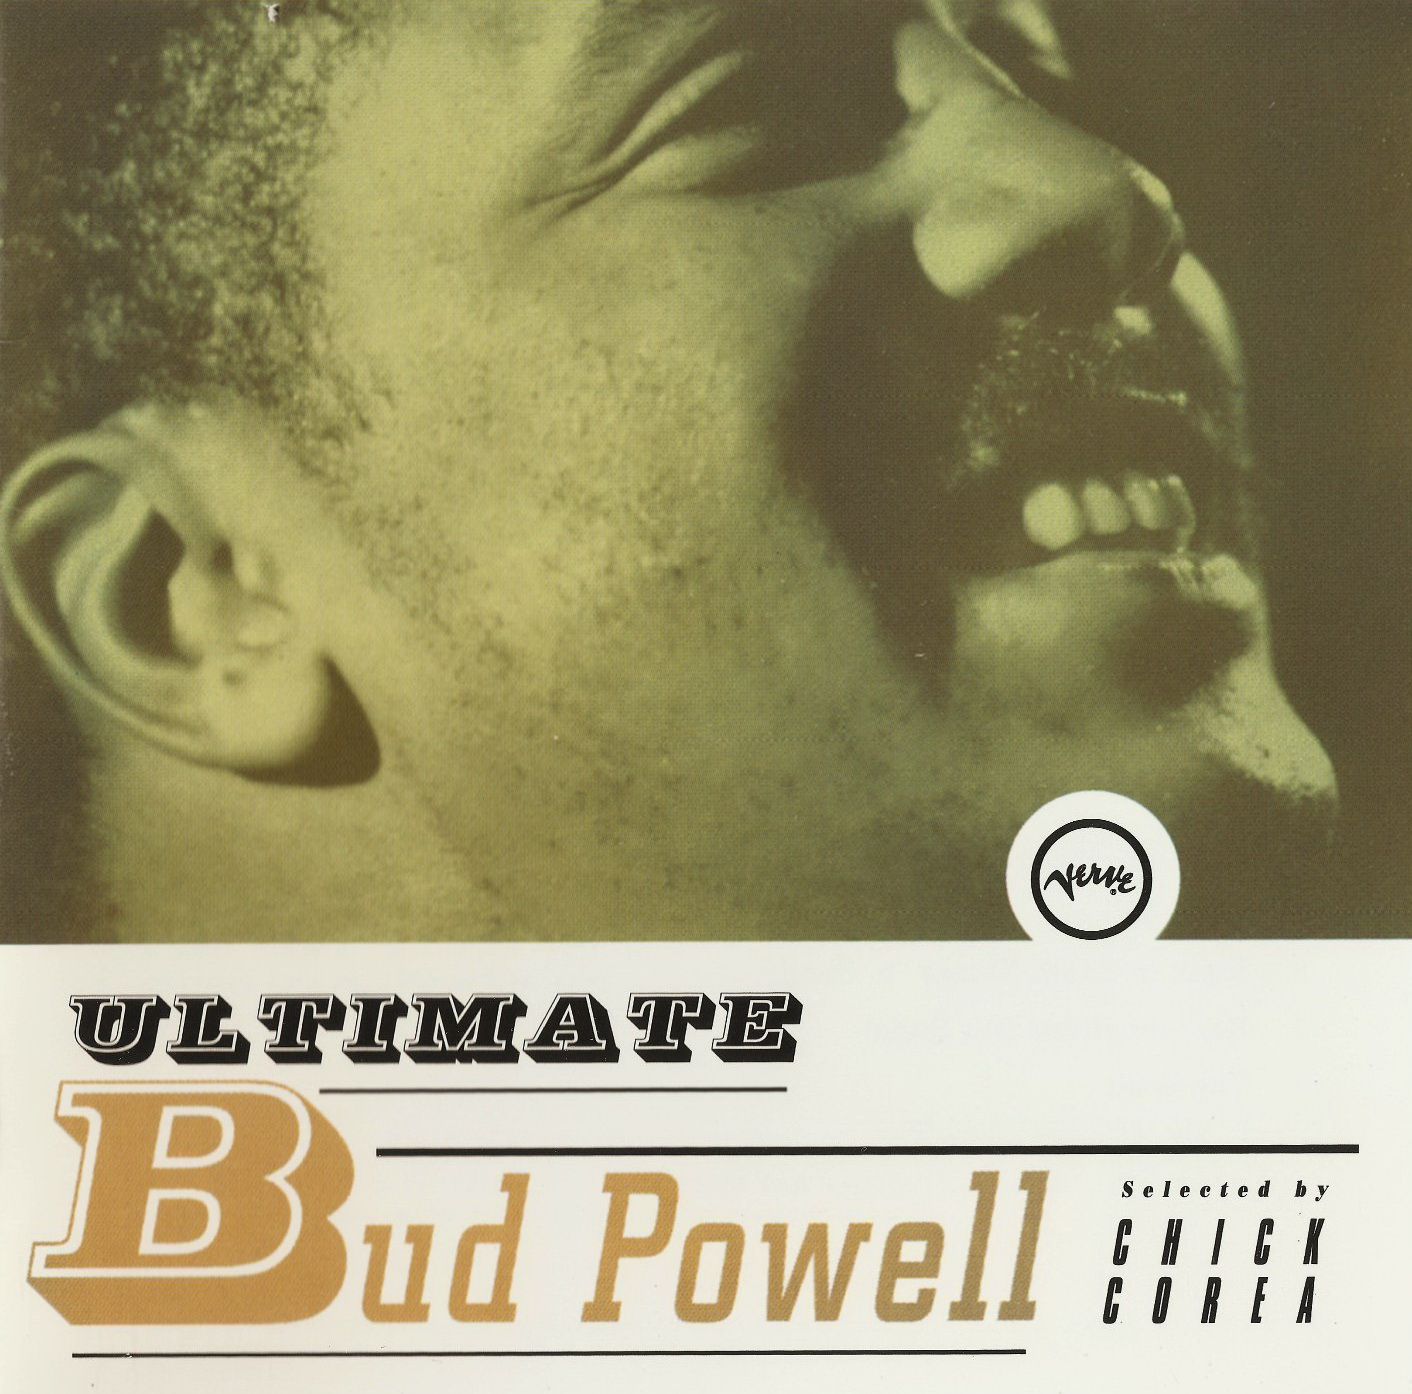 Bud Powell - Ultimate Bud Powell (1998)